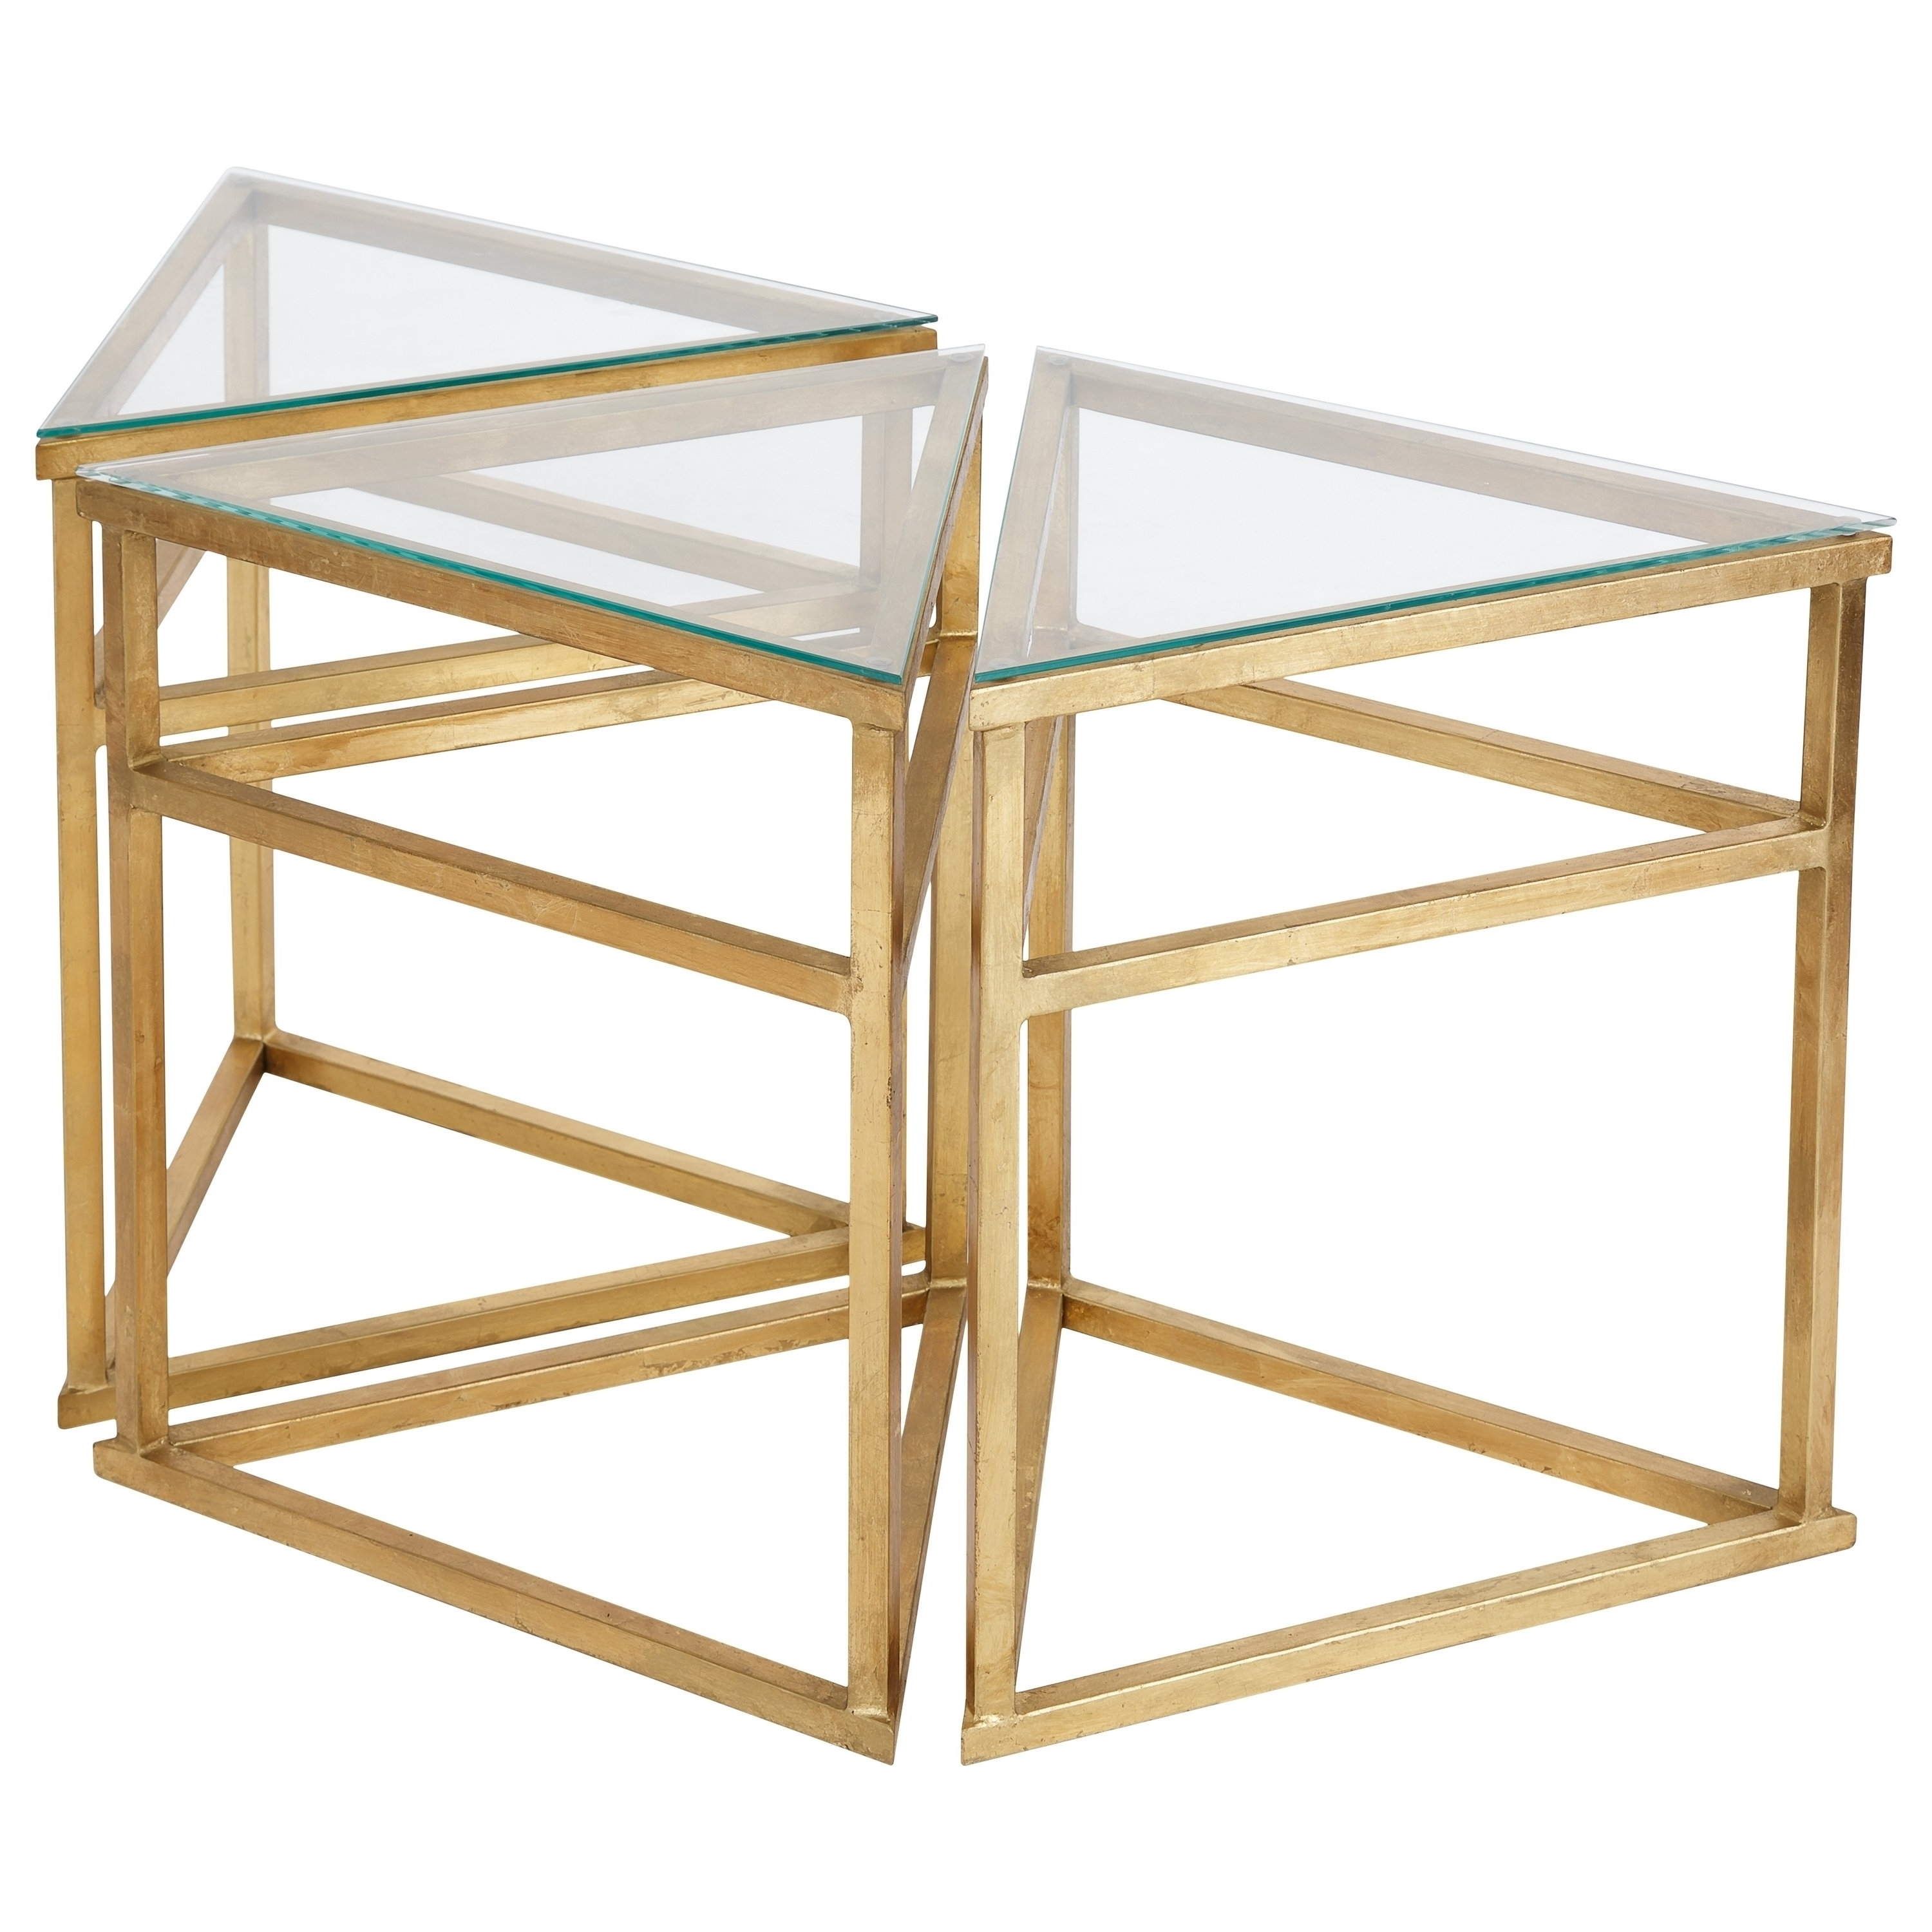 Shop Safavieh Couture High Line Collection Caliope Gold Leaf Within Well Known Gold Leaf Collection Coffee Tables (View 16 of 20)